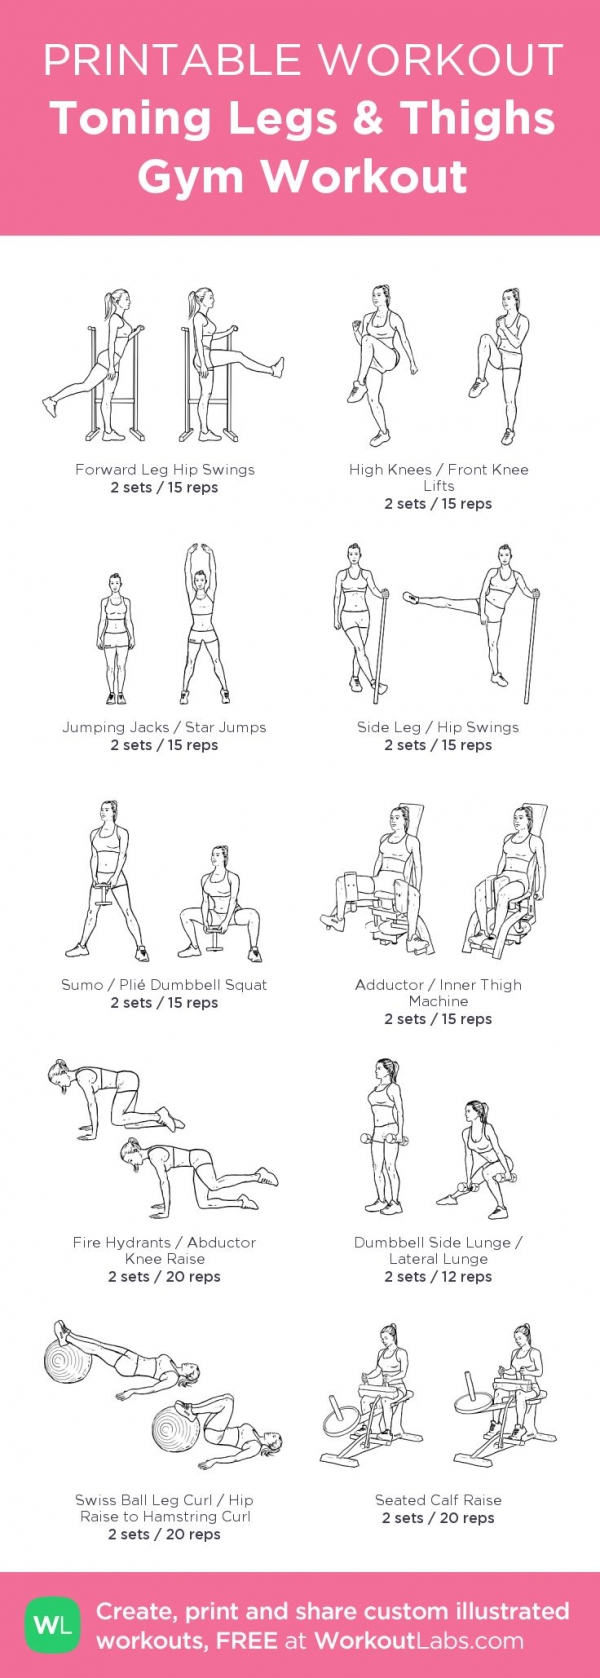 Gym Workout Images Pdf | Kayaworkout co